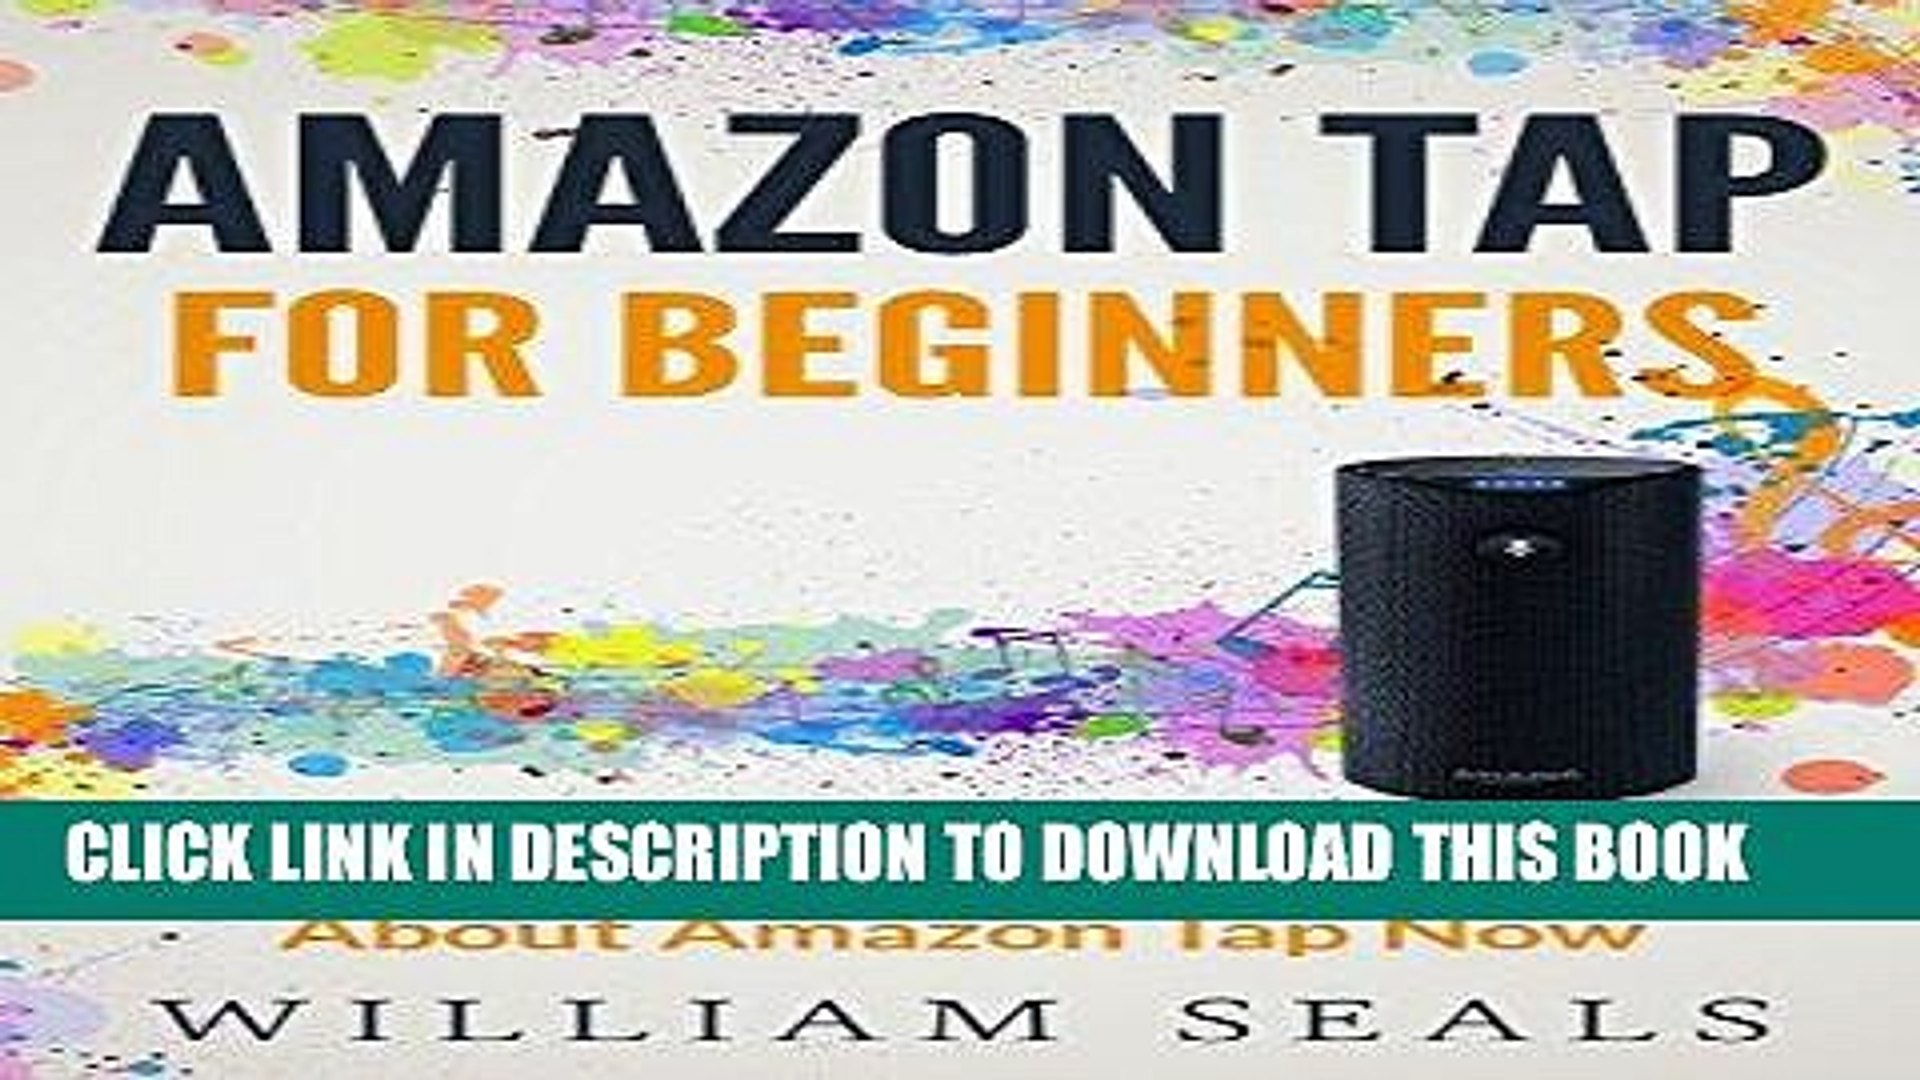 [READ] EBOOK Amazon Tap: Amazon Tap For Beginners - Everything You Need To Know About Amazon Tap